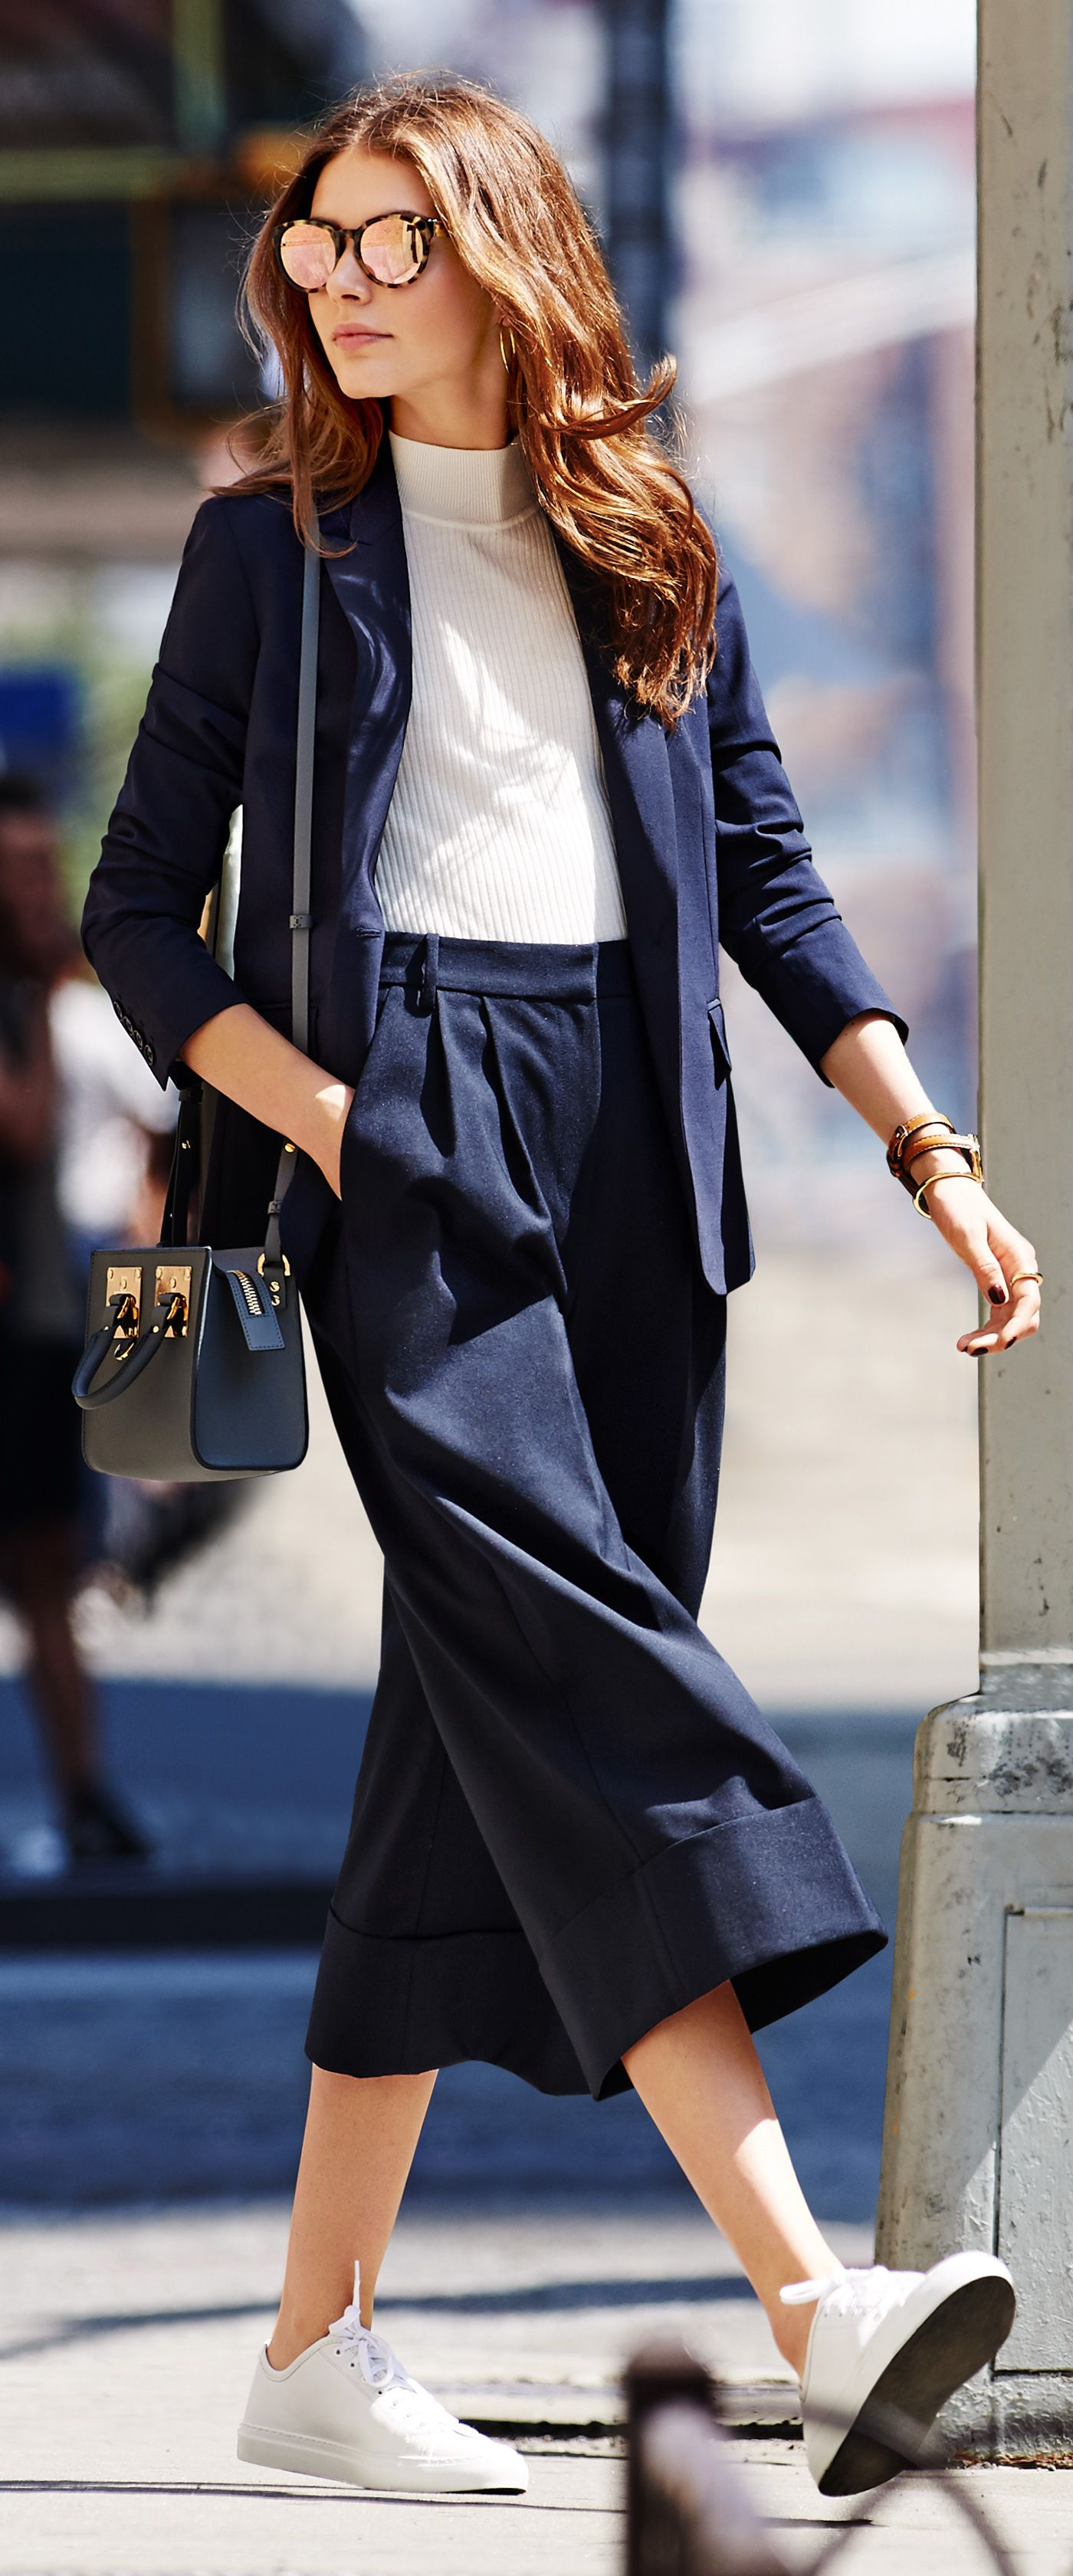 Refresh your 9-to-5 wardrobe! Workwear Style Tip: Modernize a tailored, suit-inspired look with cropped, wide-leg culottes.